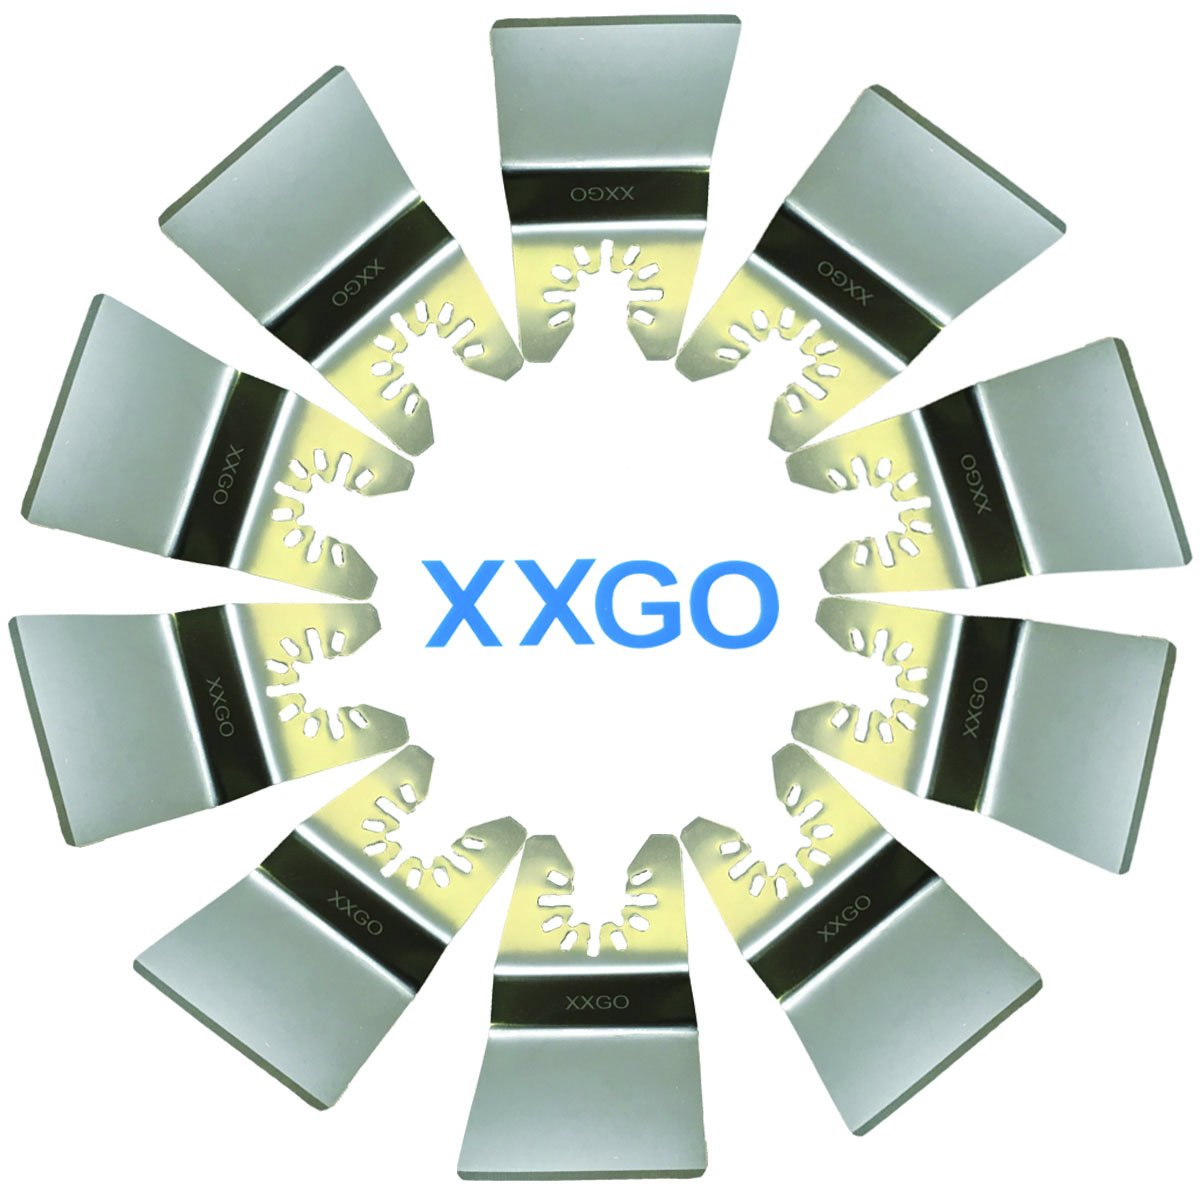 XXGO 10 Pcs Universal 2 Inch Stainless Steel Oscillating Multi Tool Rigid Scraper Blades For Paint, Grout